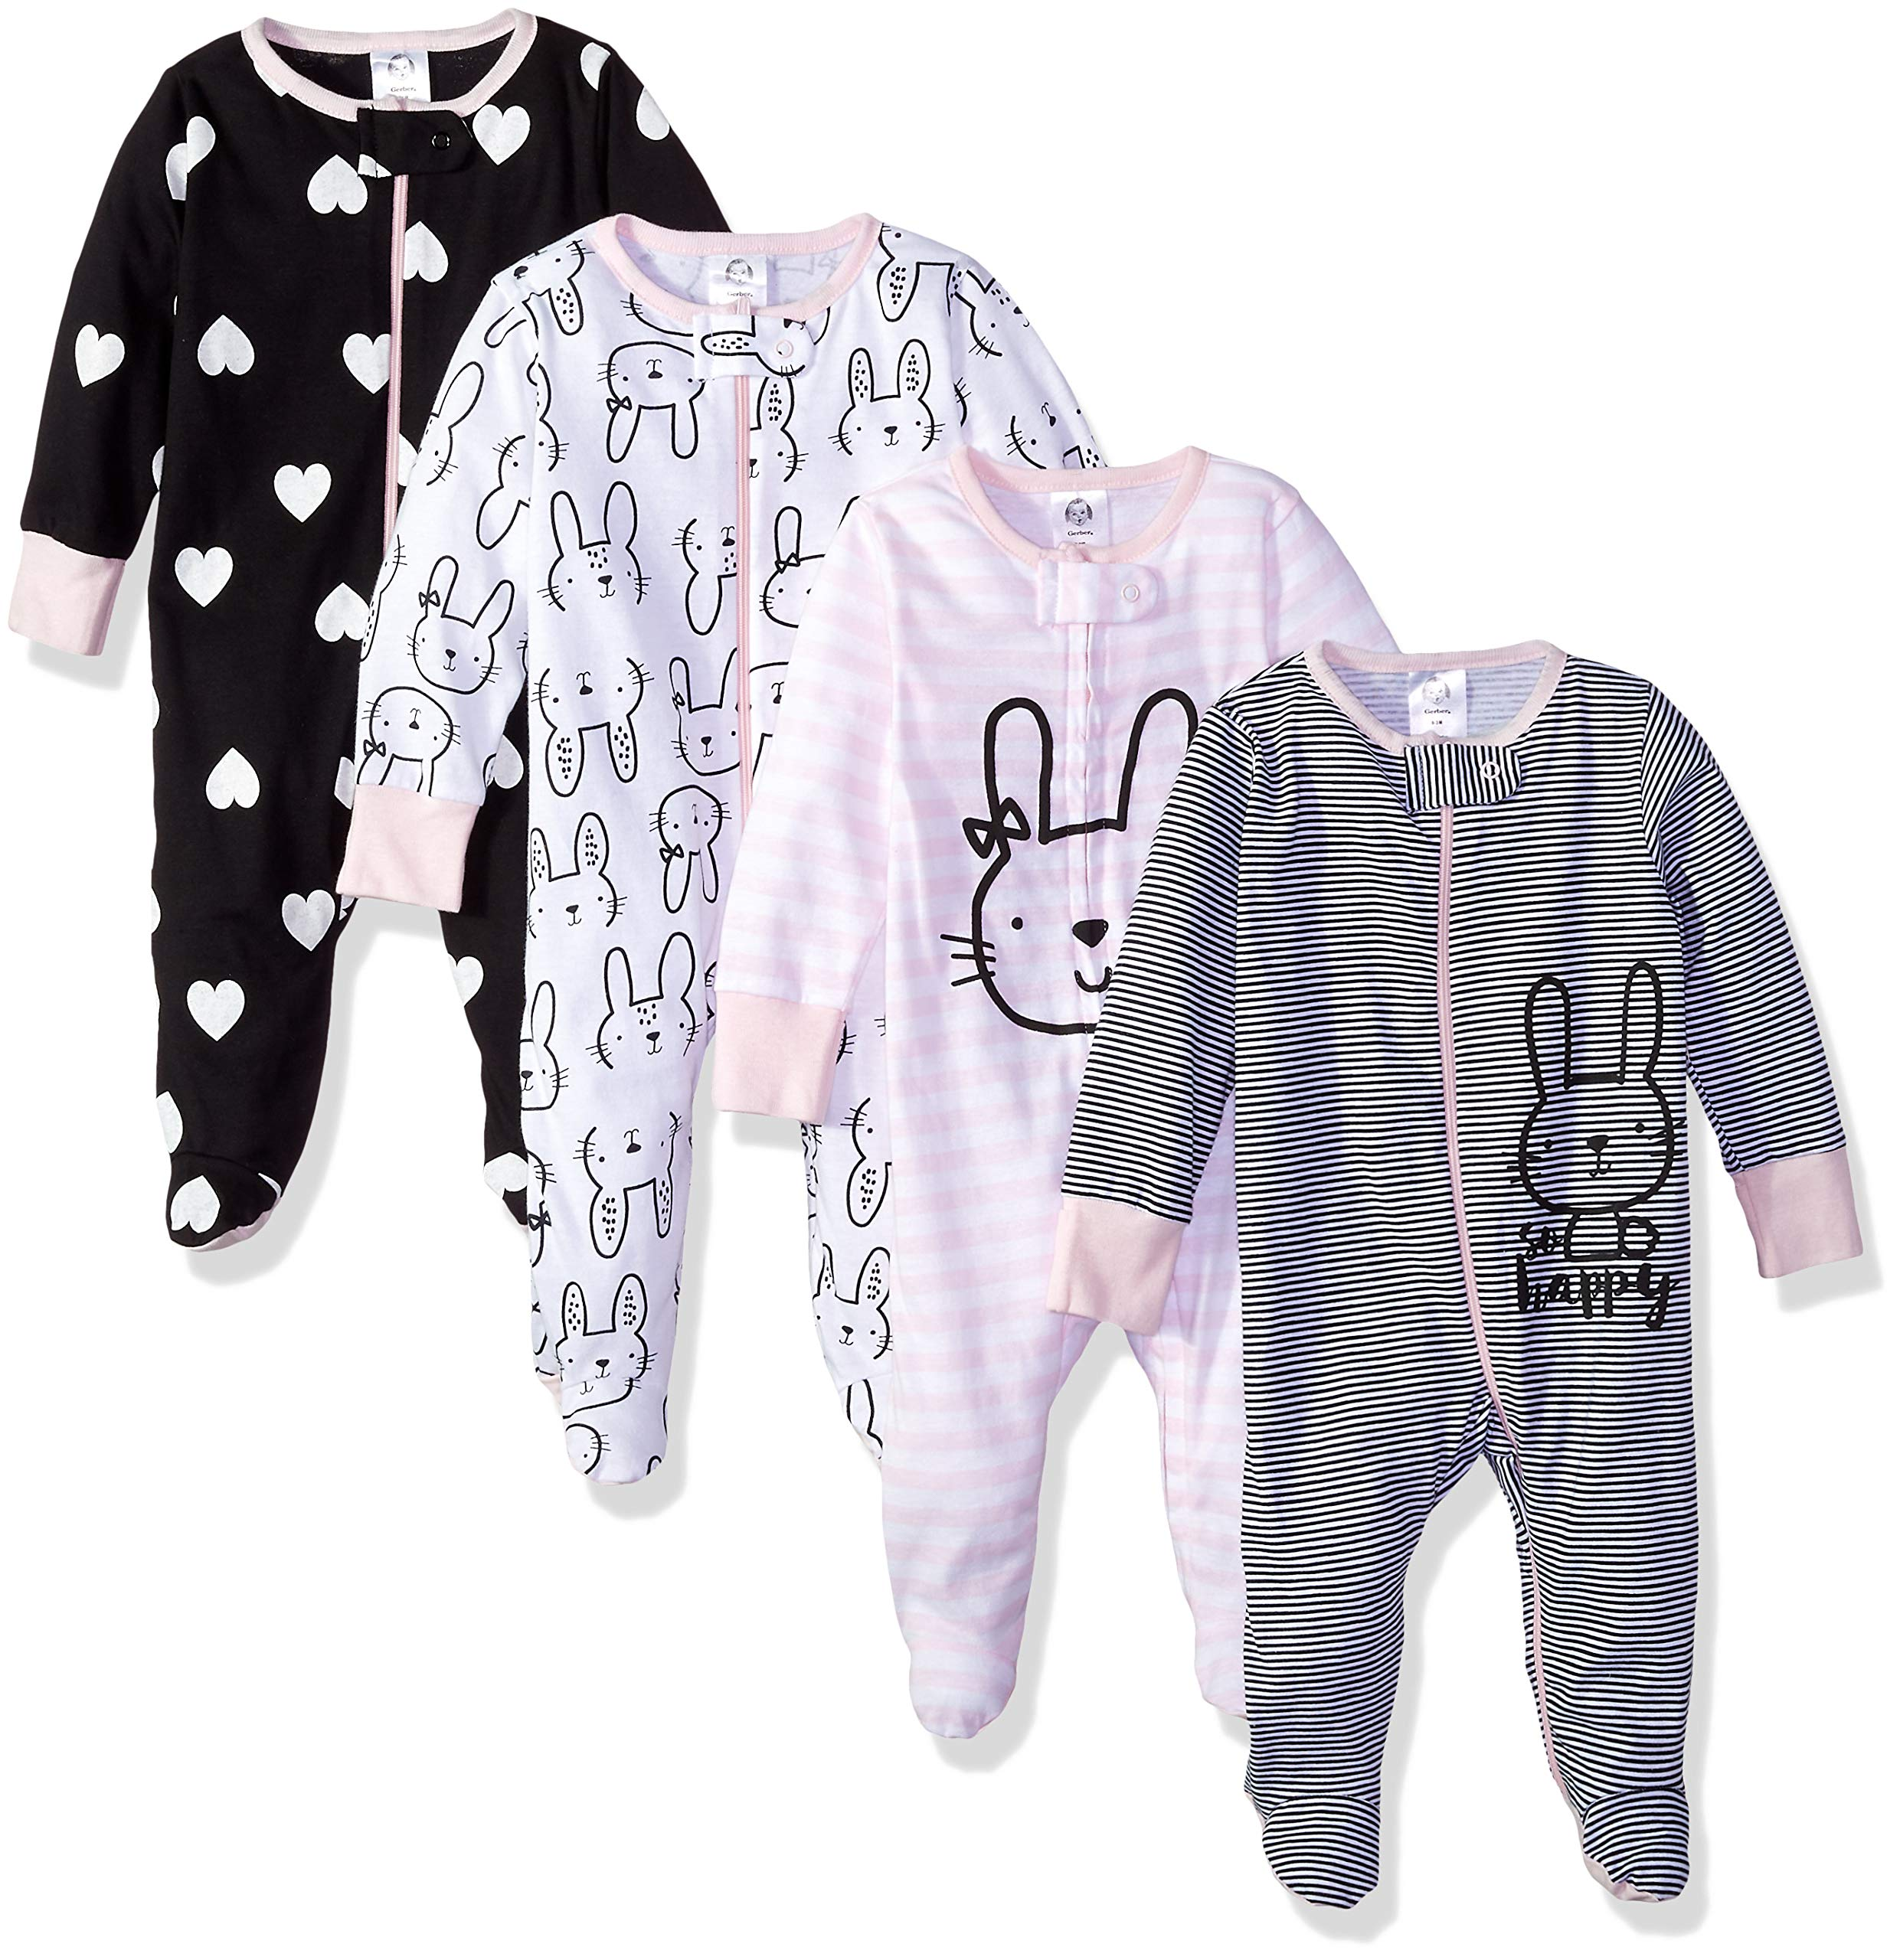 Zanie Kids Baby Girls 100/% Cotton Pajama Snug Fit Footless Sleep and Play Newborn One Piece Jumpsuits